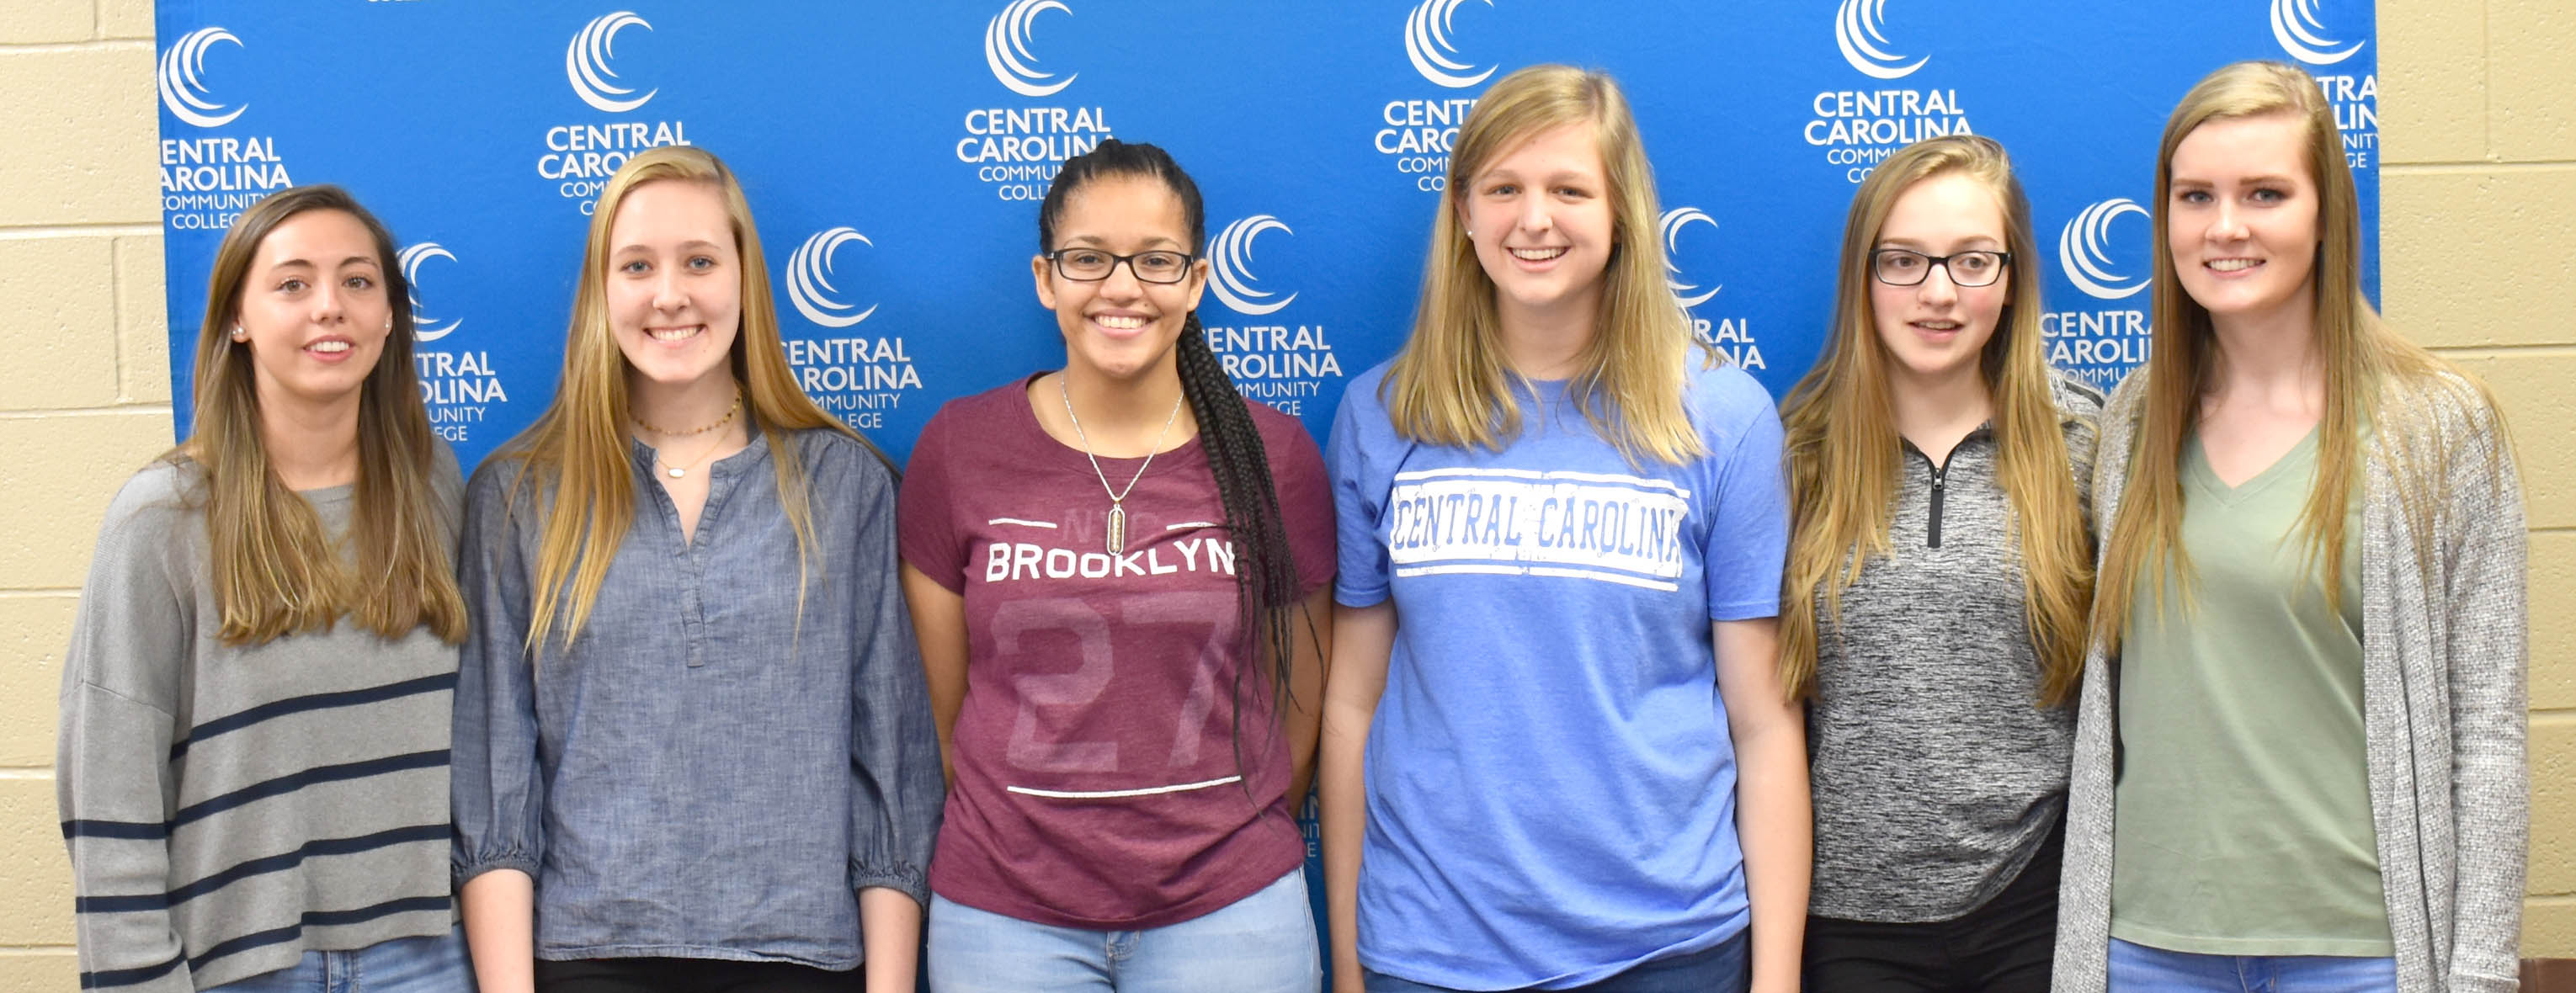 Click to enlarge,  Among the newest additions to the Central Carolina Community College volleyball program are, pictured left to right: Kyra Harrison, Grace McAllister, Jolanni Gadist, Taylor Rosser, Kristen Fletcher, and Jenni Dalrymple.